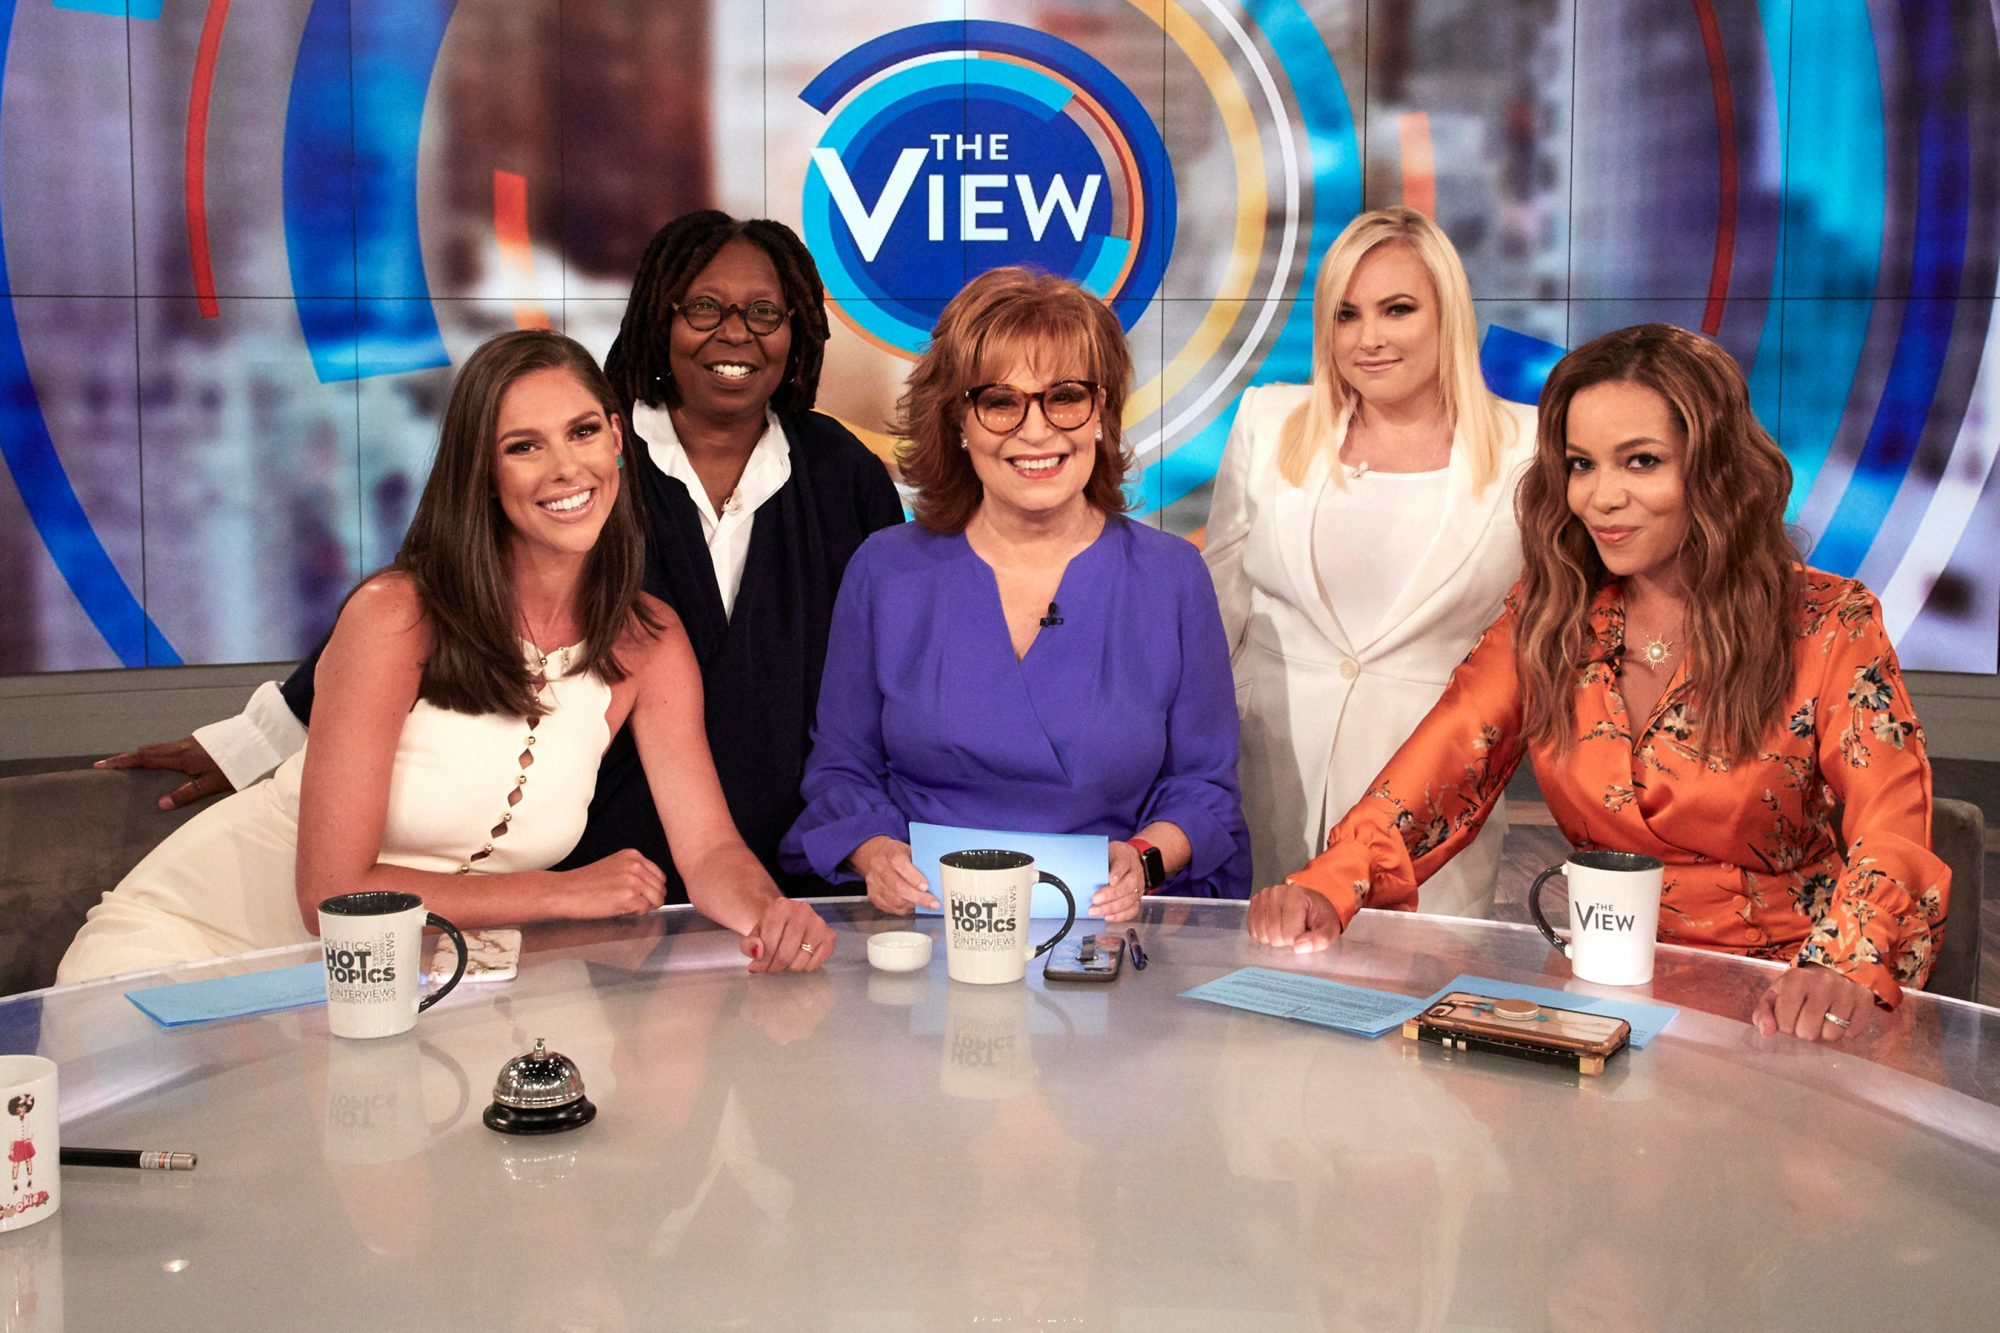 "THE VIEW - 9/3/19 Season 23 of ABC's ""The View"" begins Tuesday, September 3, 2019. ""The View"" airs Monday-Friday (11am-12 noon, ET) on ABC. VW19 (Walt Disney Television/Heidi Gutman) SUNNY HOSTIN, WHOOPI GOLDBERG, JOY BEHAR, MEGHAN MCCAIN, SUNNY HOSTIN"